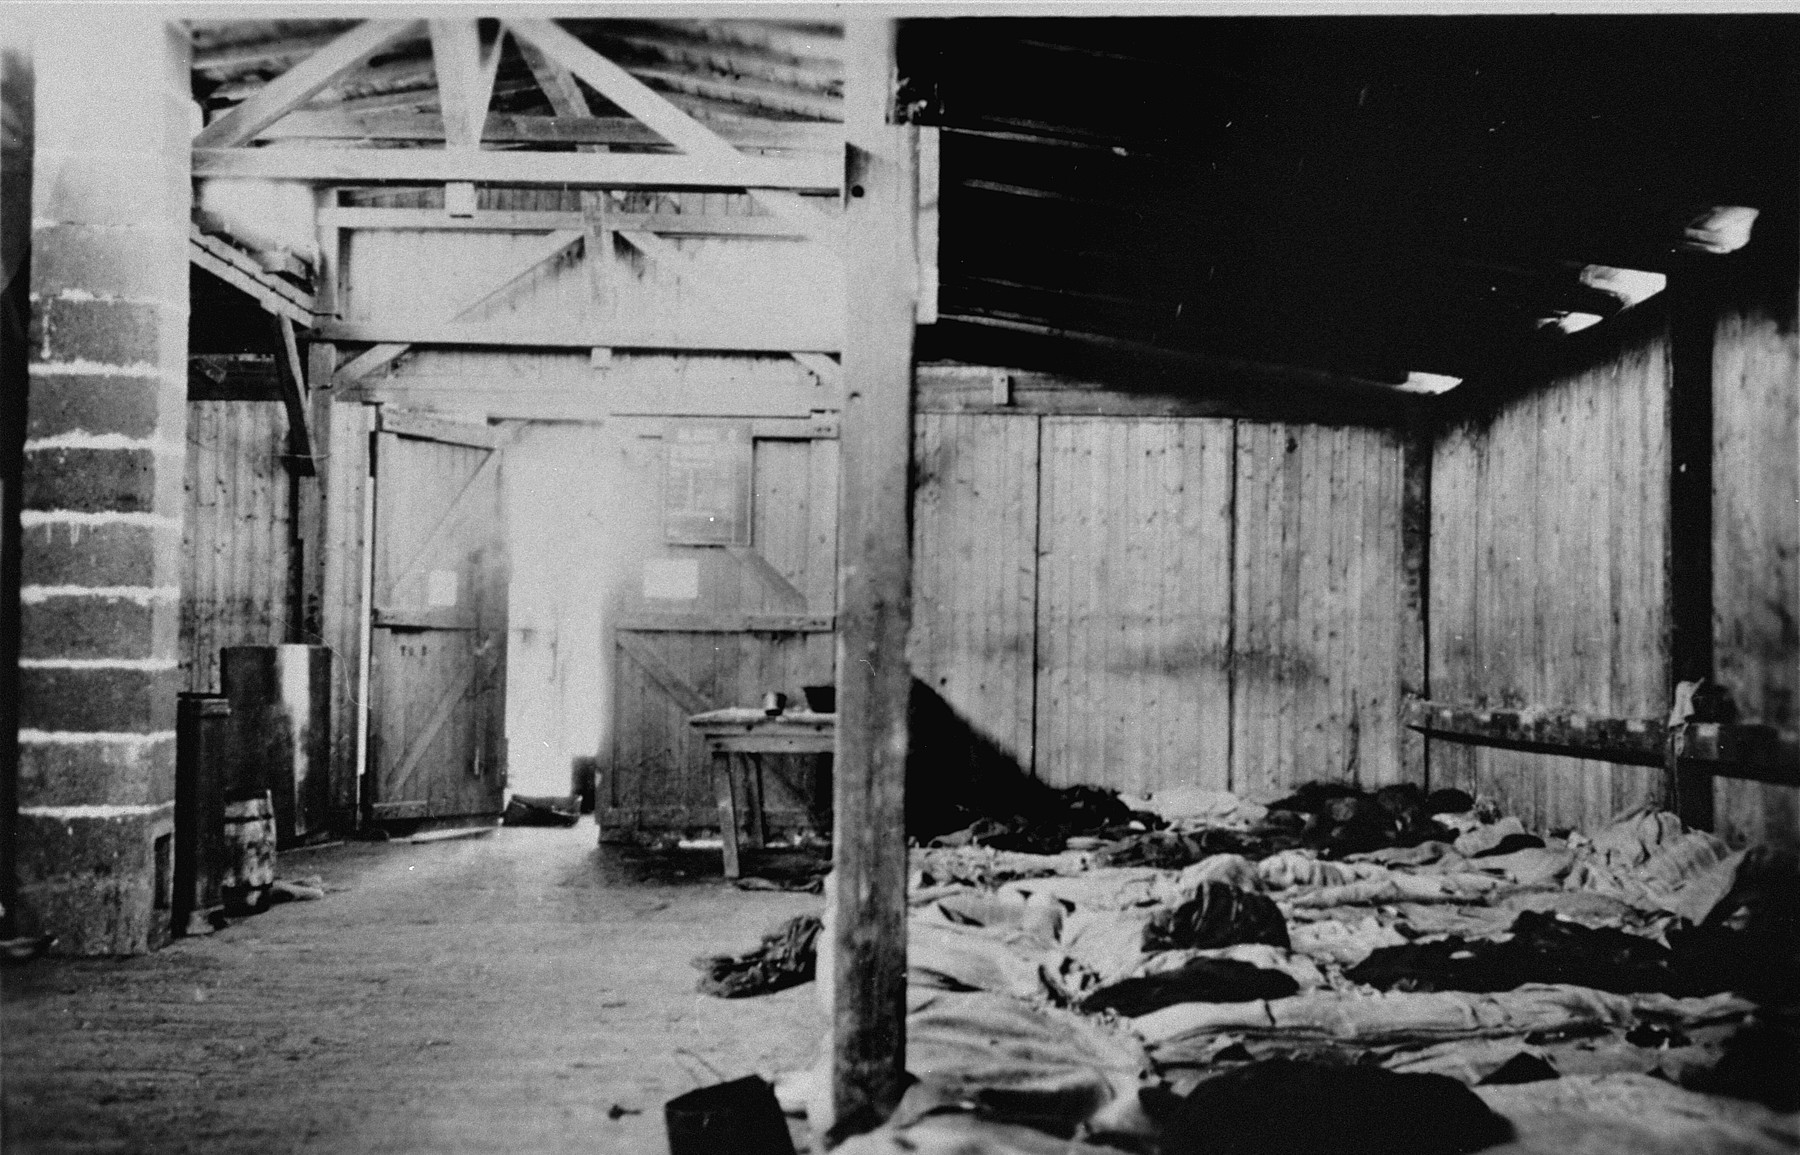 The interior of a barracks in the newly liberated Ohrdruf concentration camp.